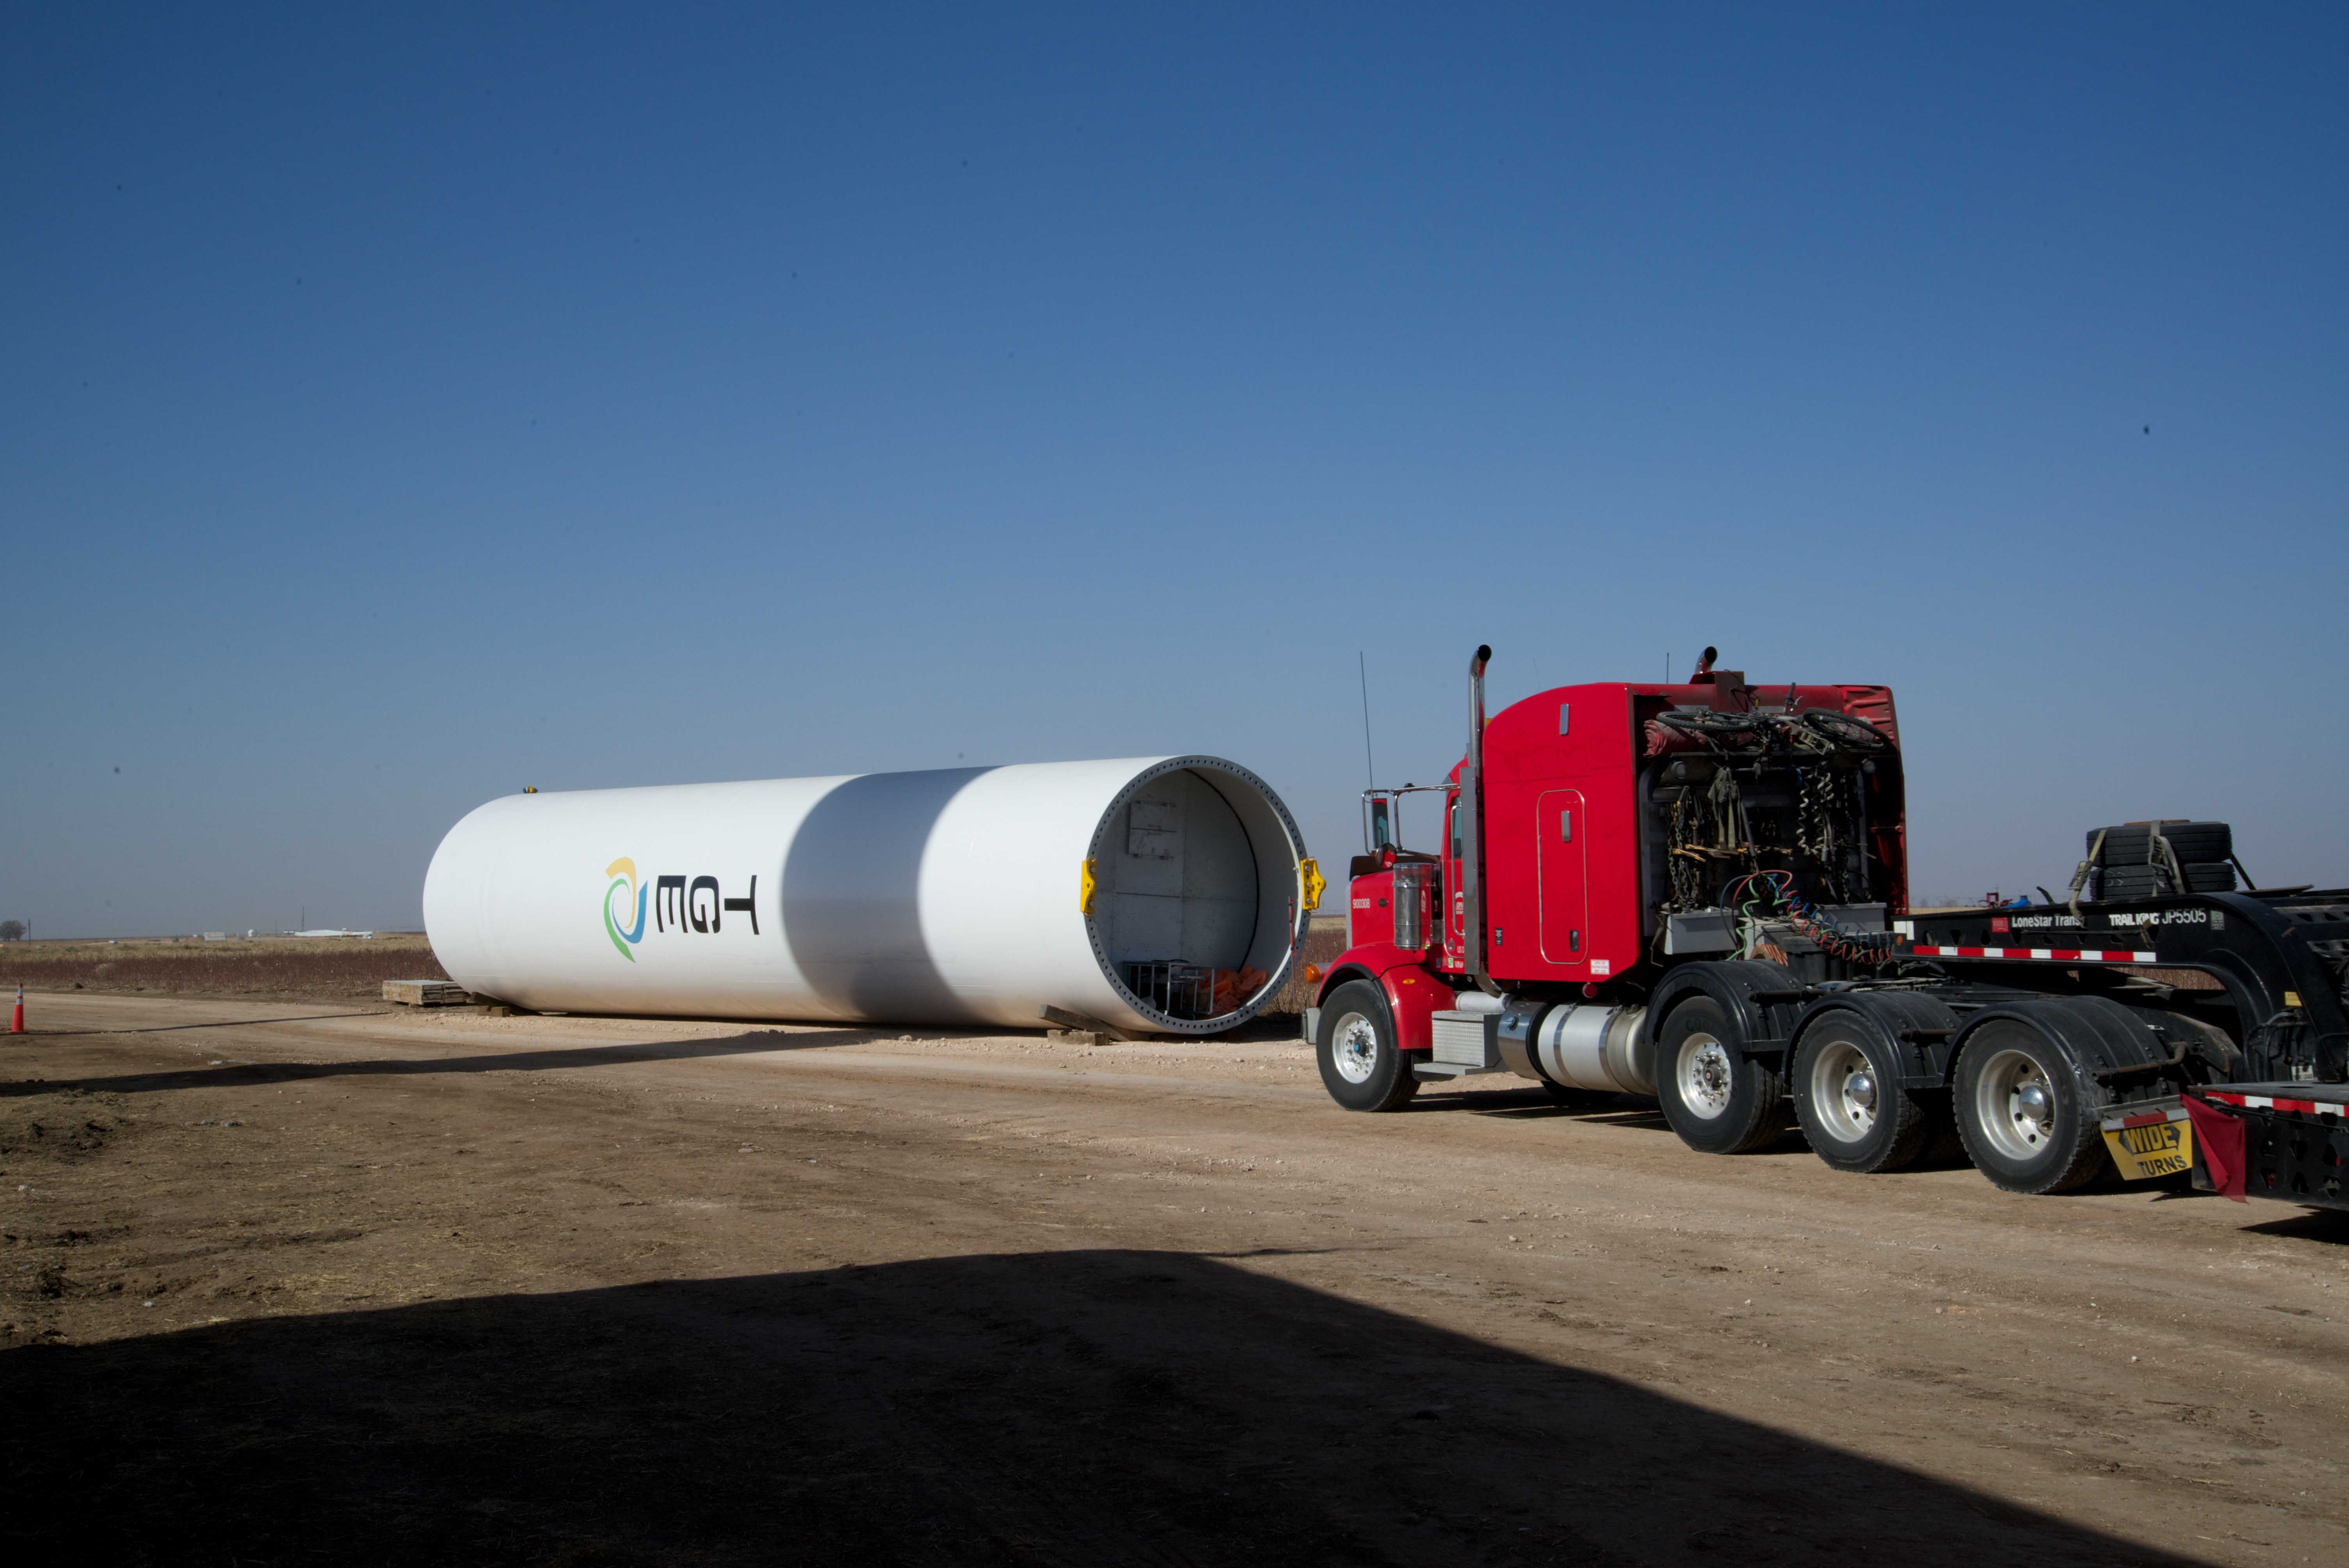 Tri Global Energy Announces Sale of West Texas Wind Project to TERNA ENERGY